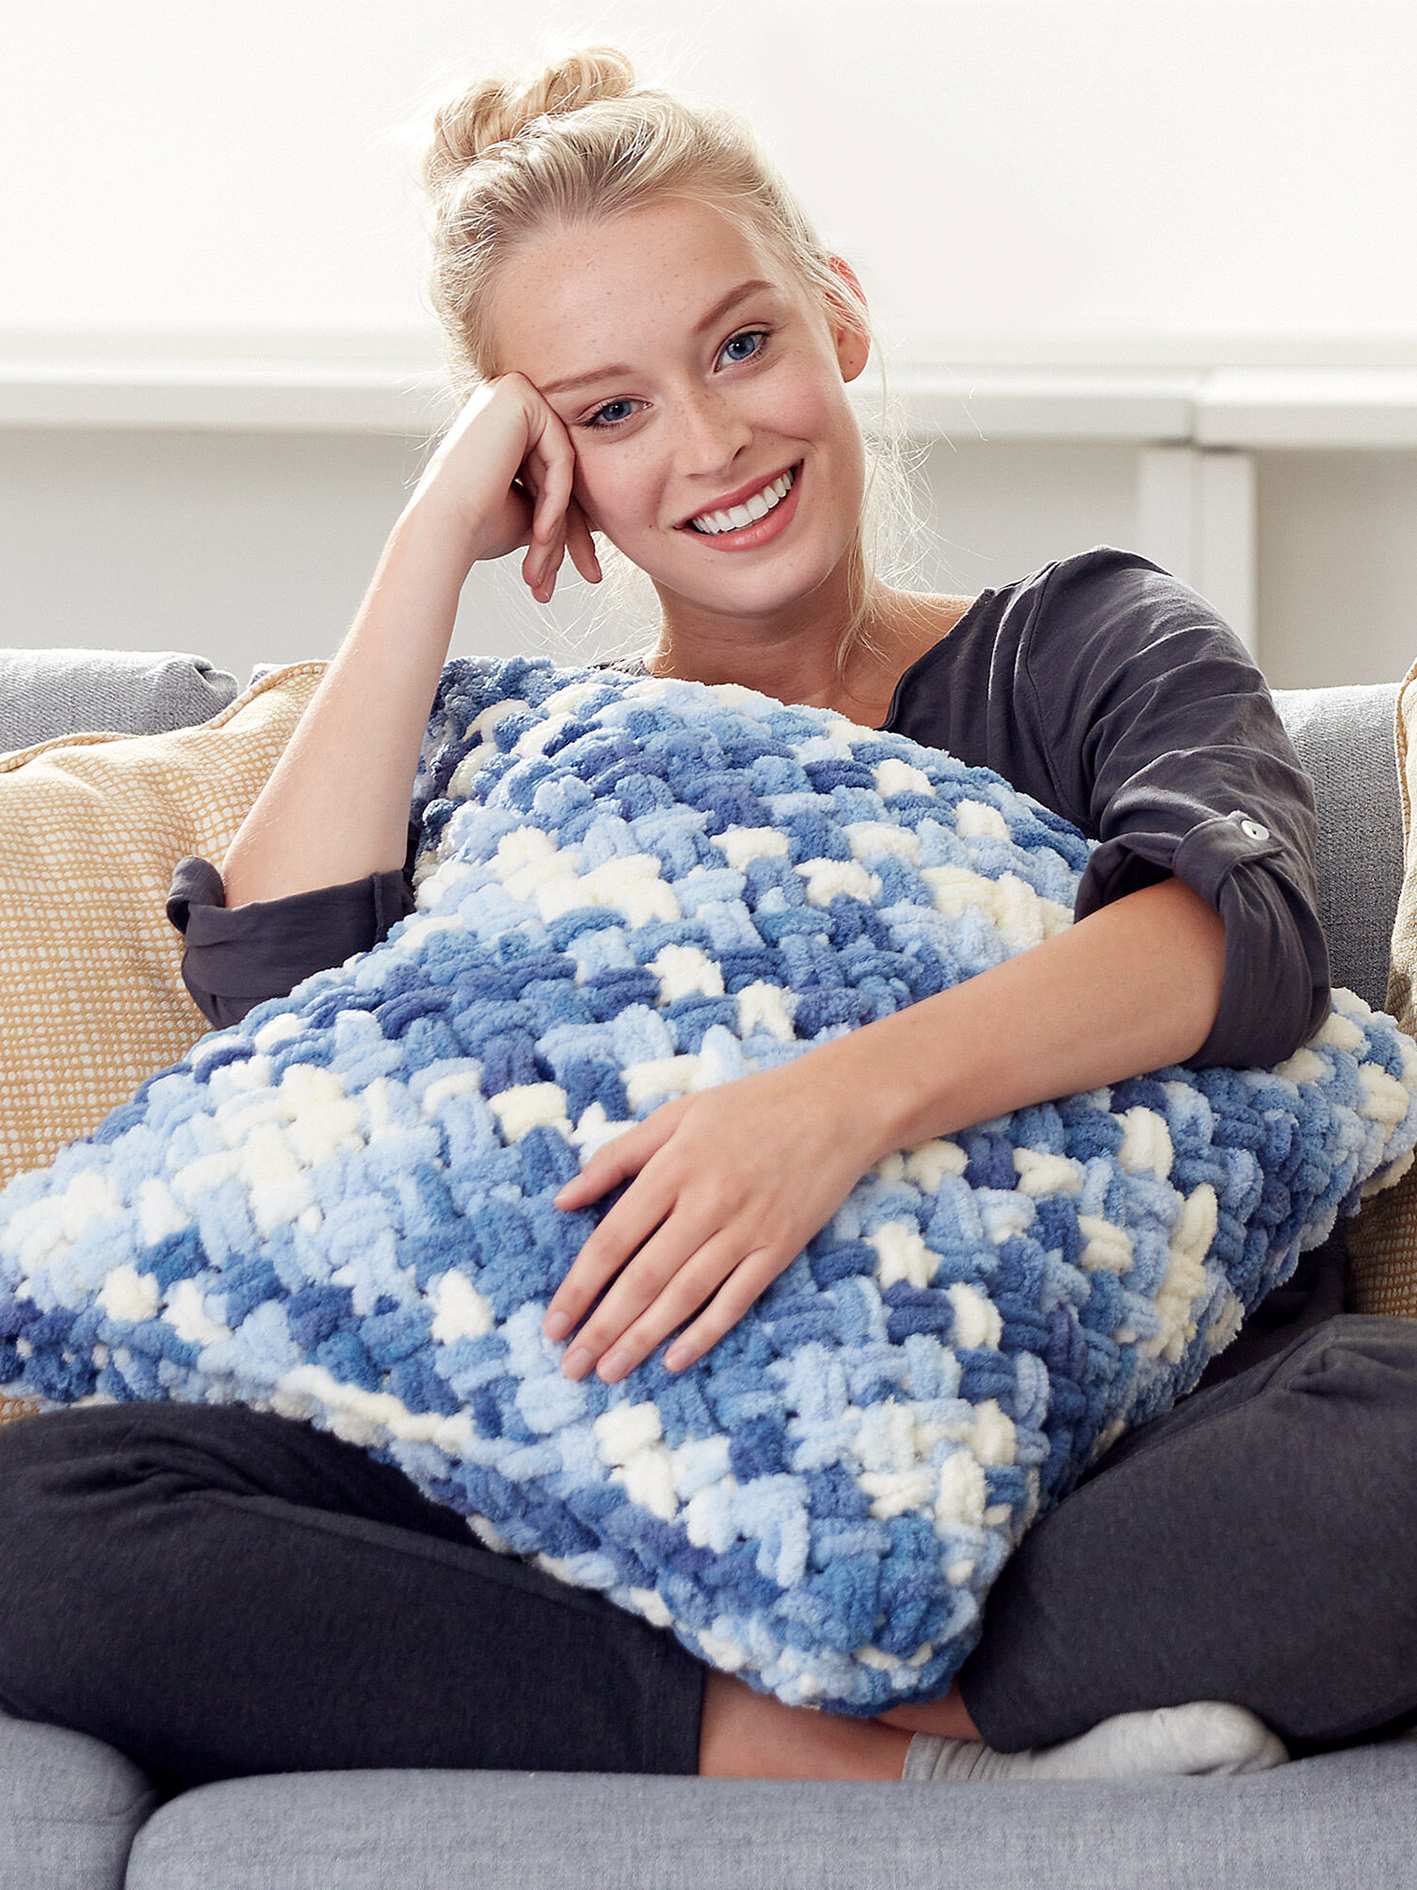 crochet-pillow-you-want-to-make-your-house-so-elegant-30-new-decor-crochet-pillow-ideas-new-2019